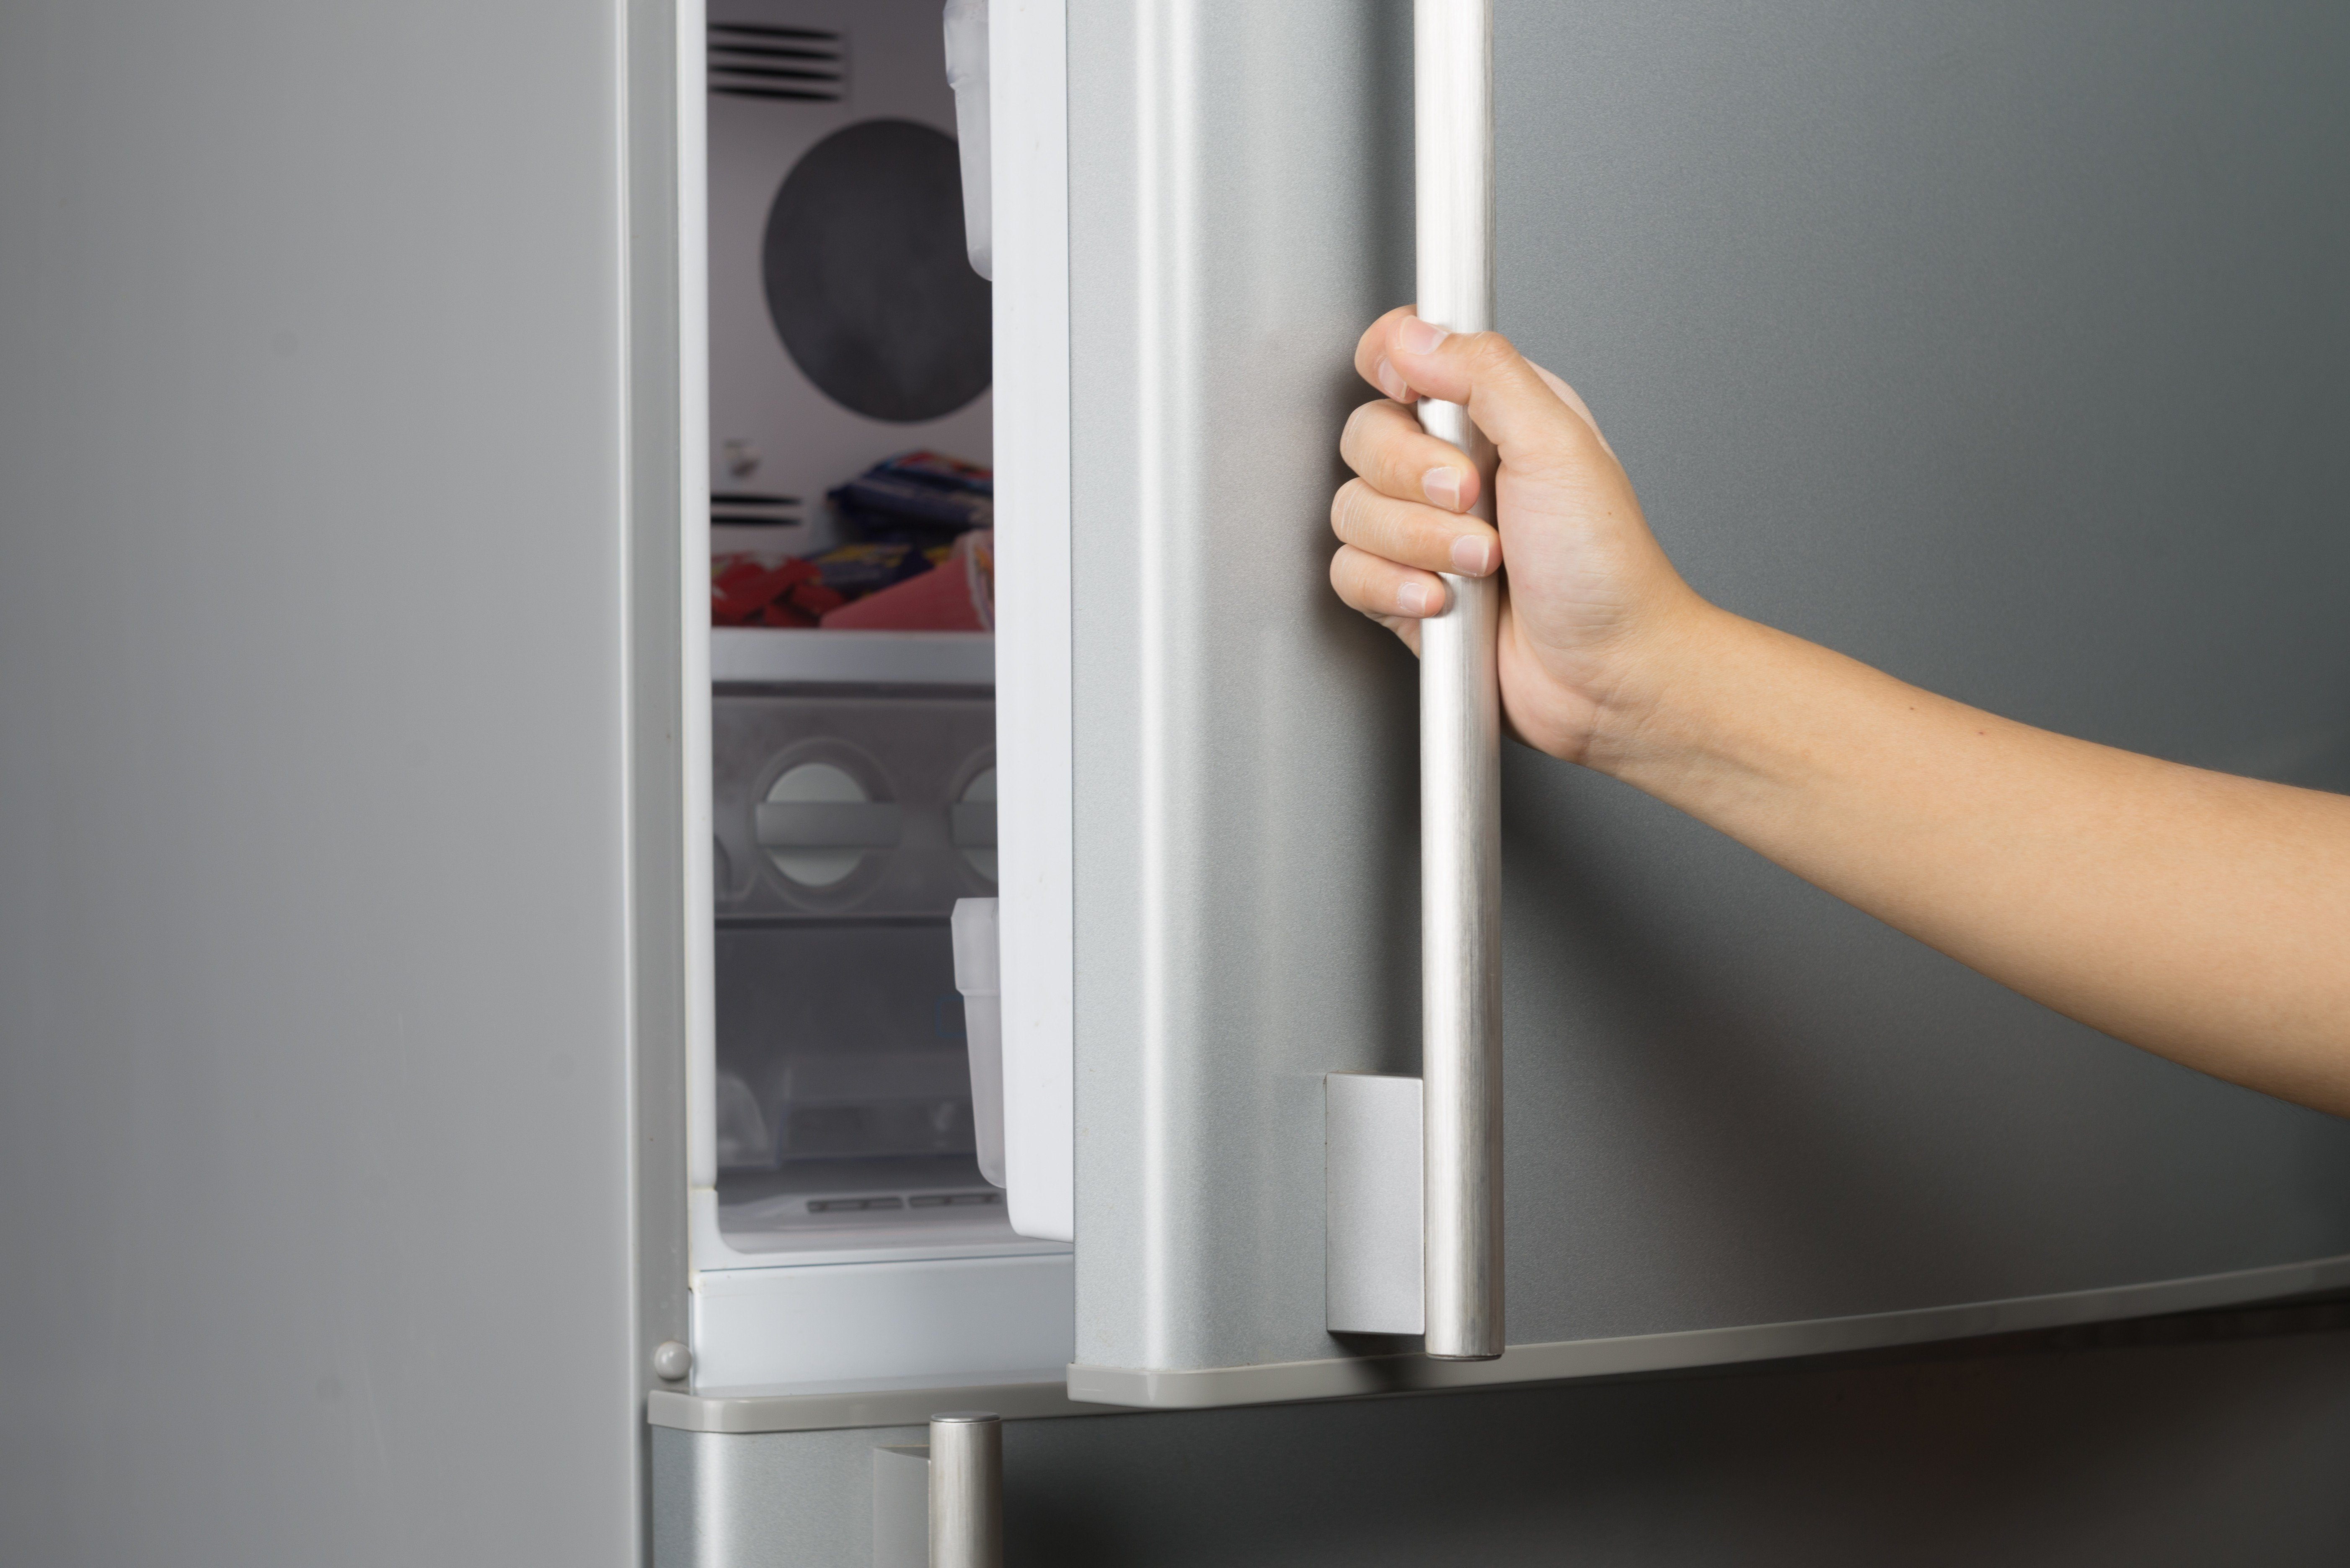 Hand of a woman is opening a refrigerator door